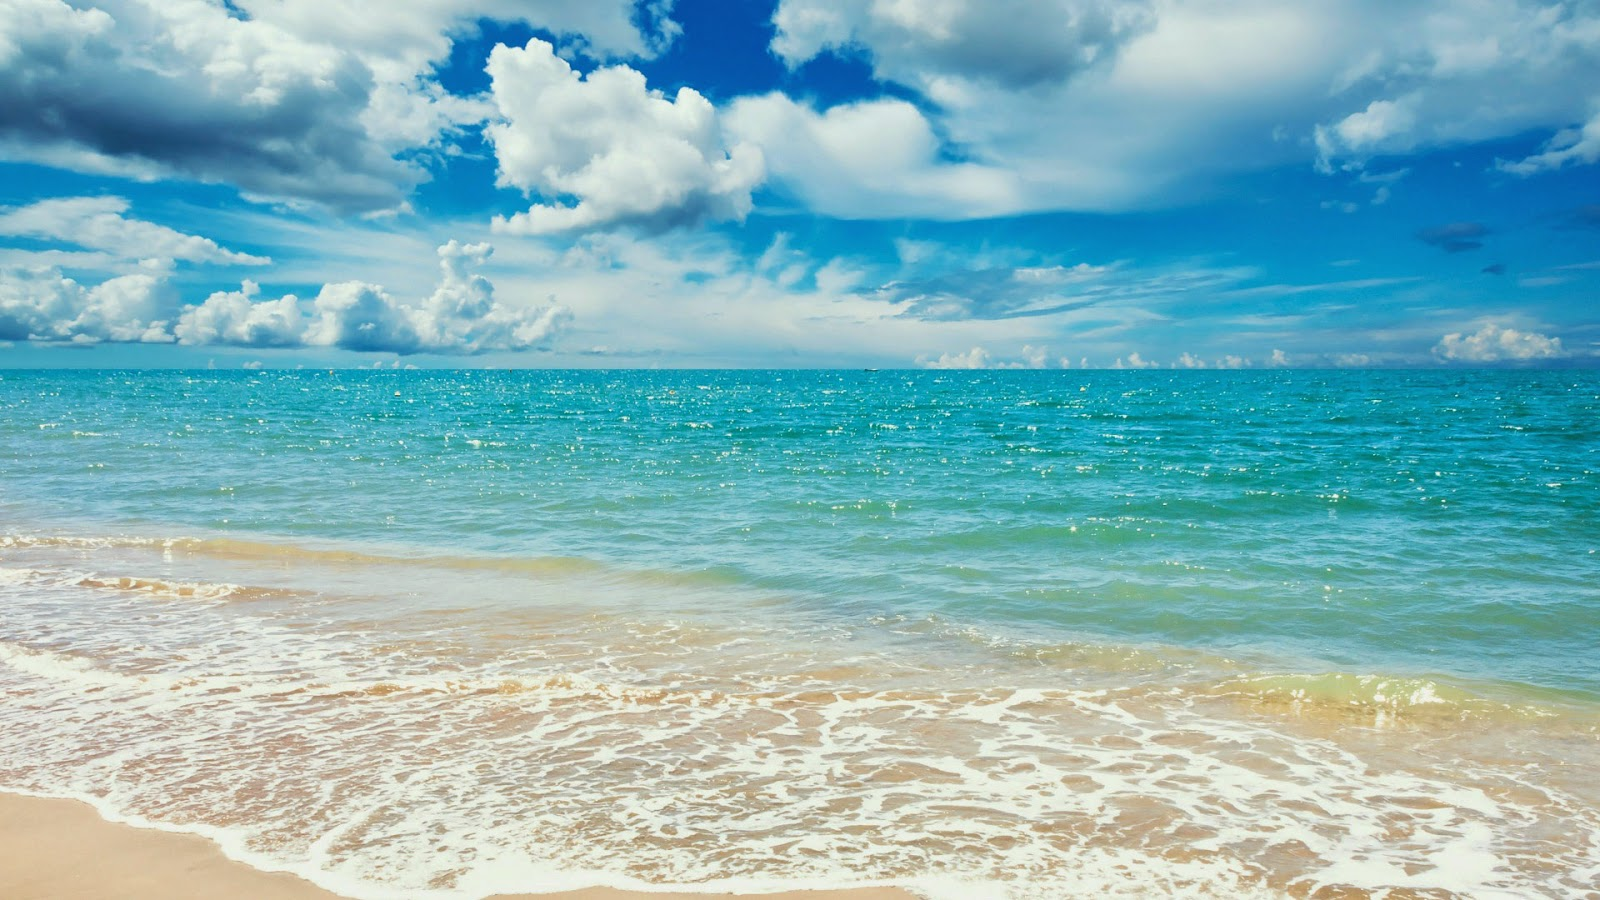 Peaceful-calm-silent-Sea-shore-with-no-waves-sky-with-white-clouds-cool-image.jpg